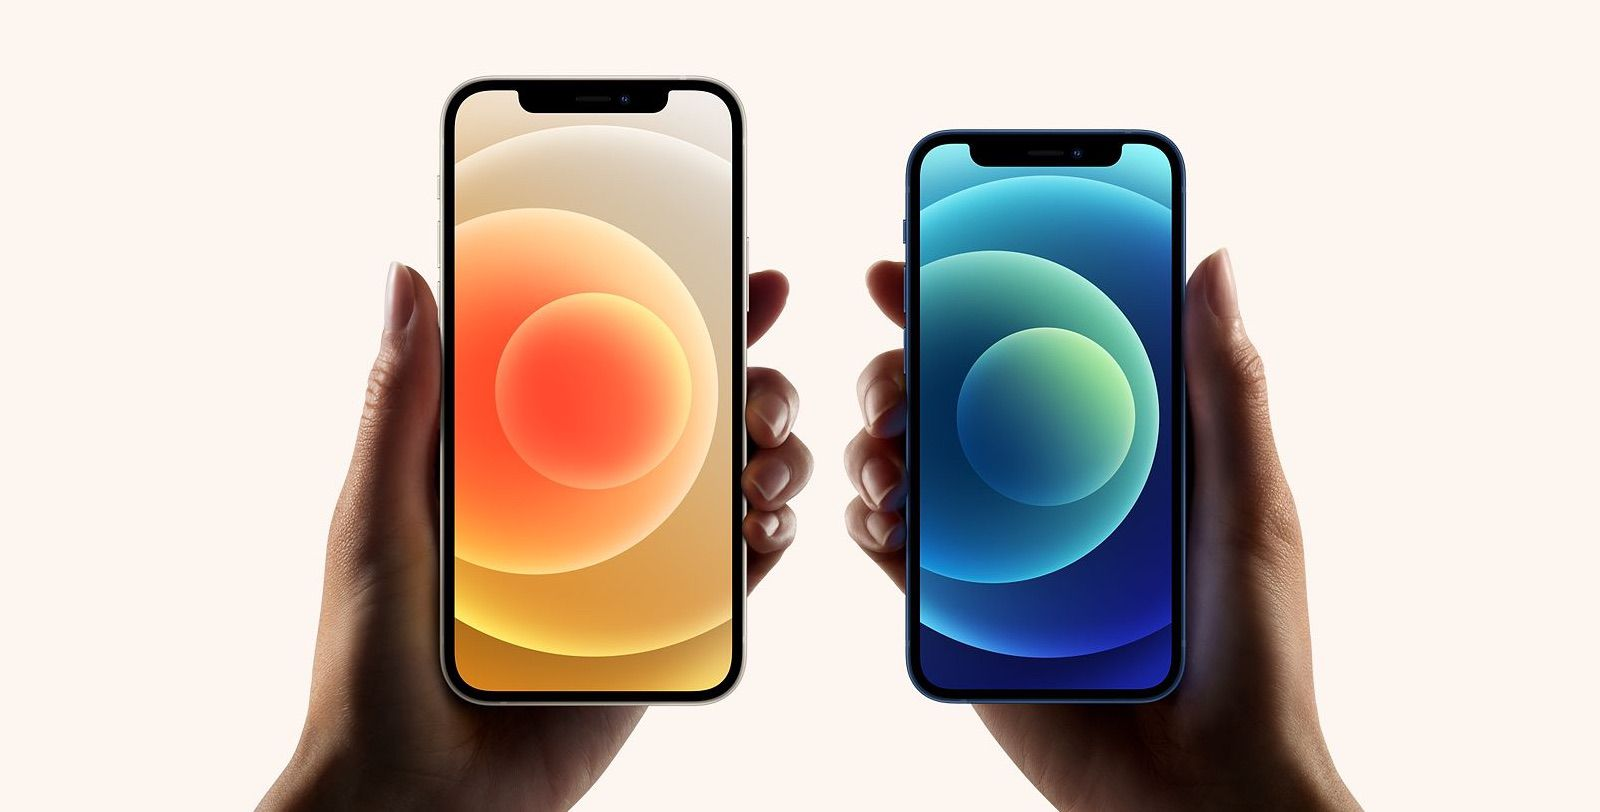 When You Can Pre-Order the iPhone 12 Mini, iPhone 12 Pro Max and HomePod Mini in Every Time Zone